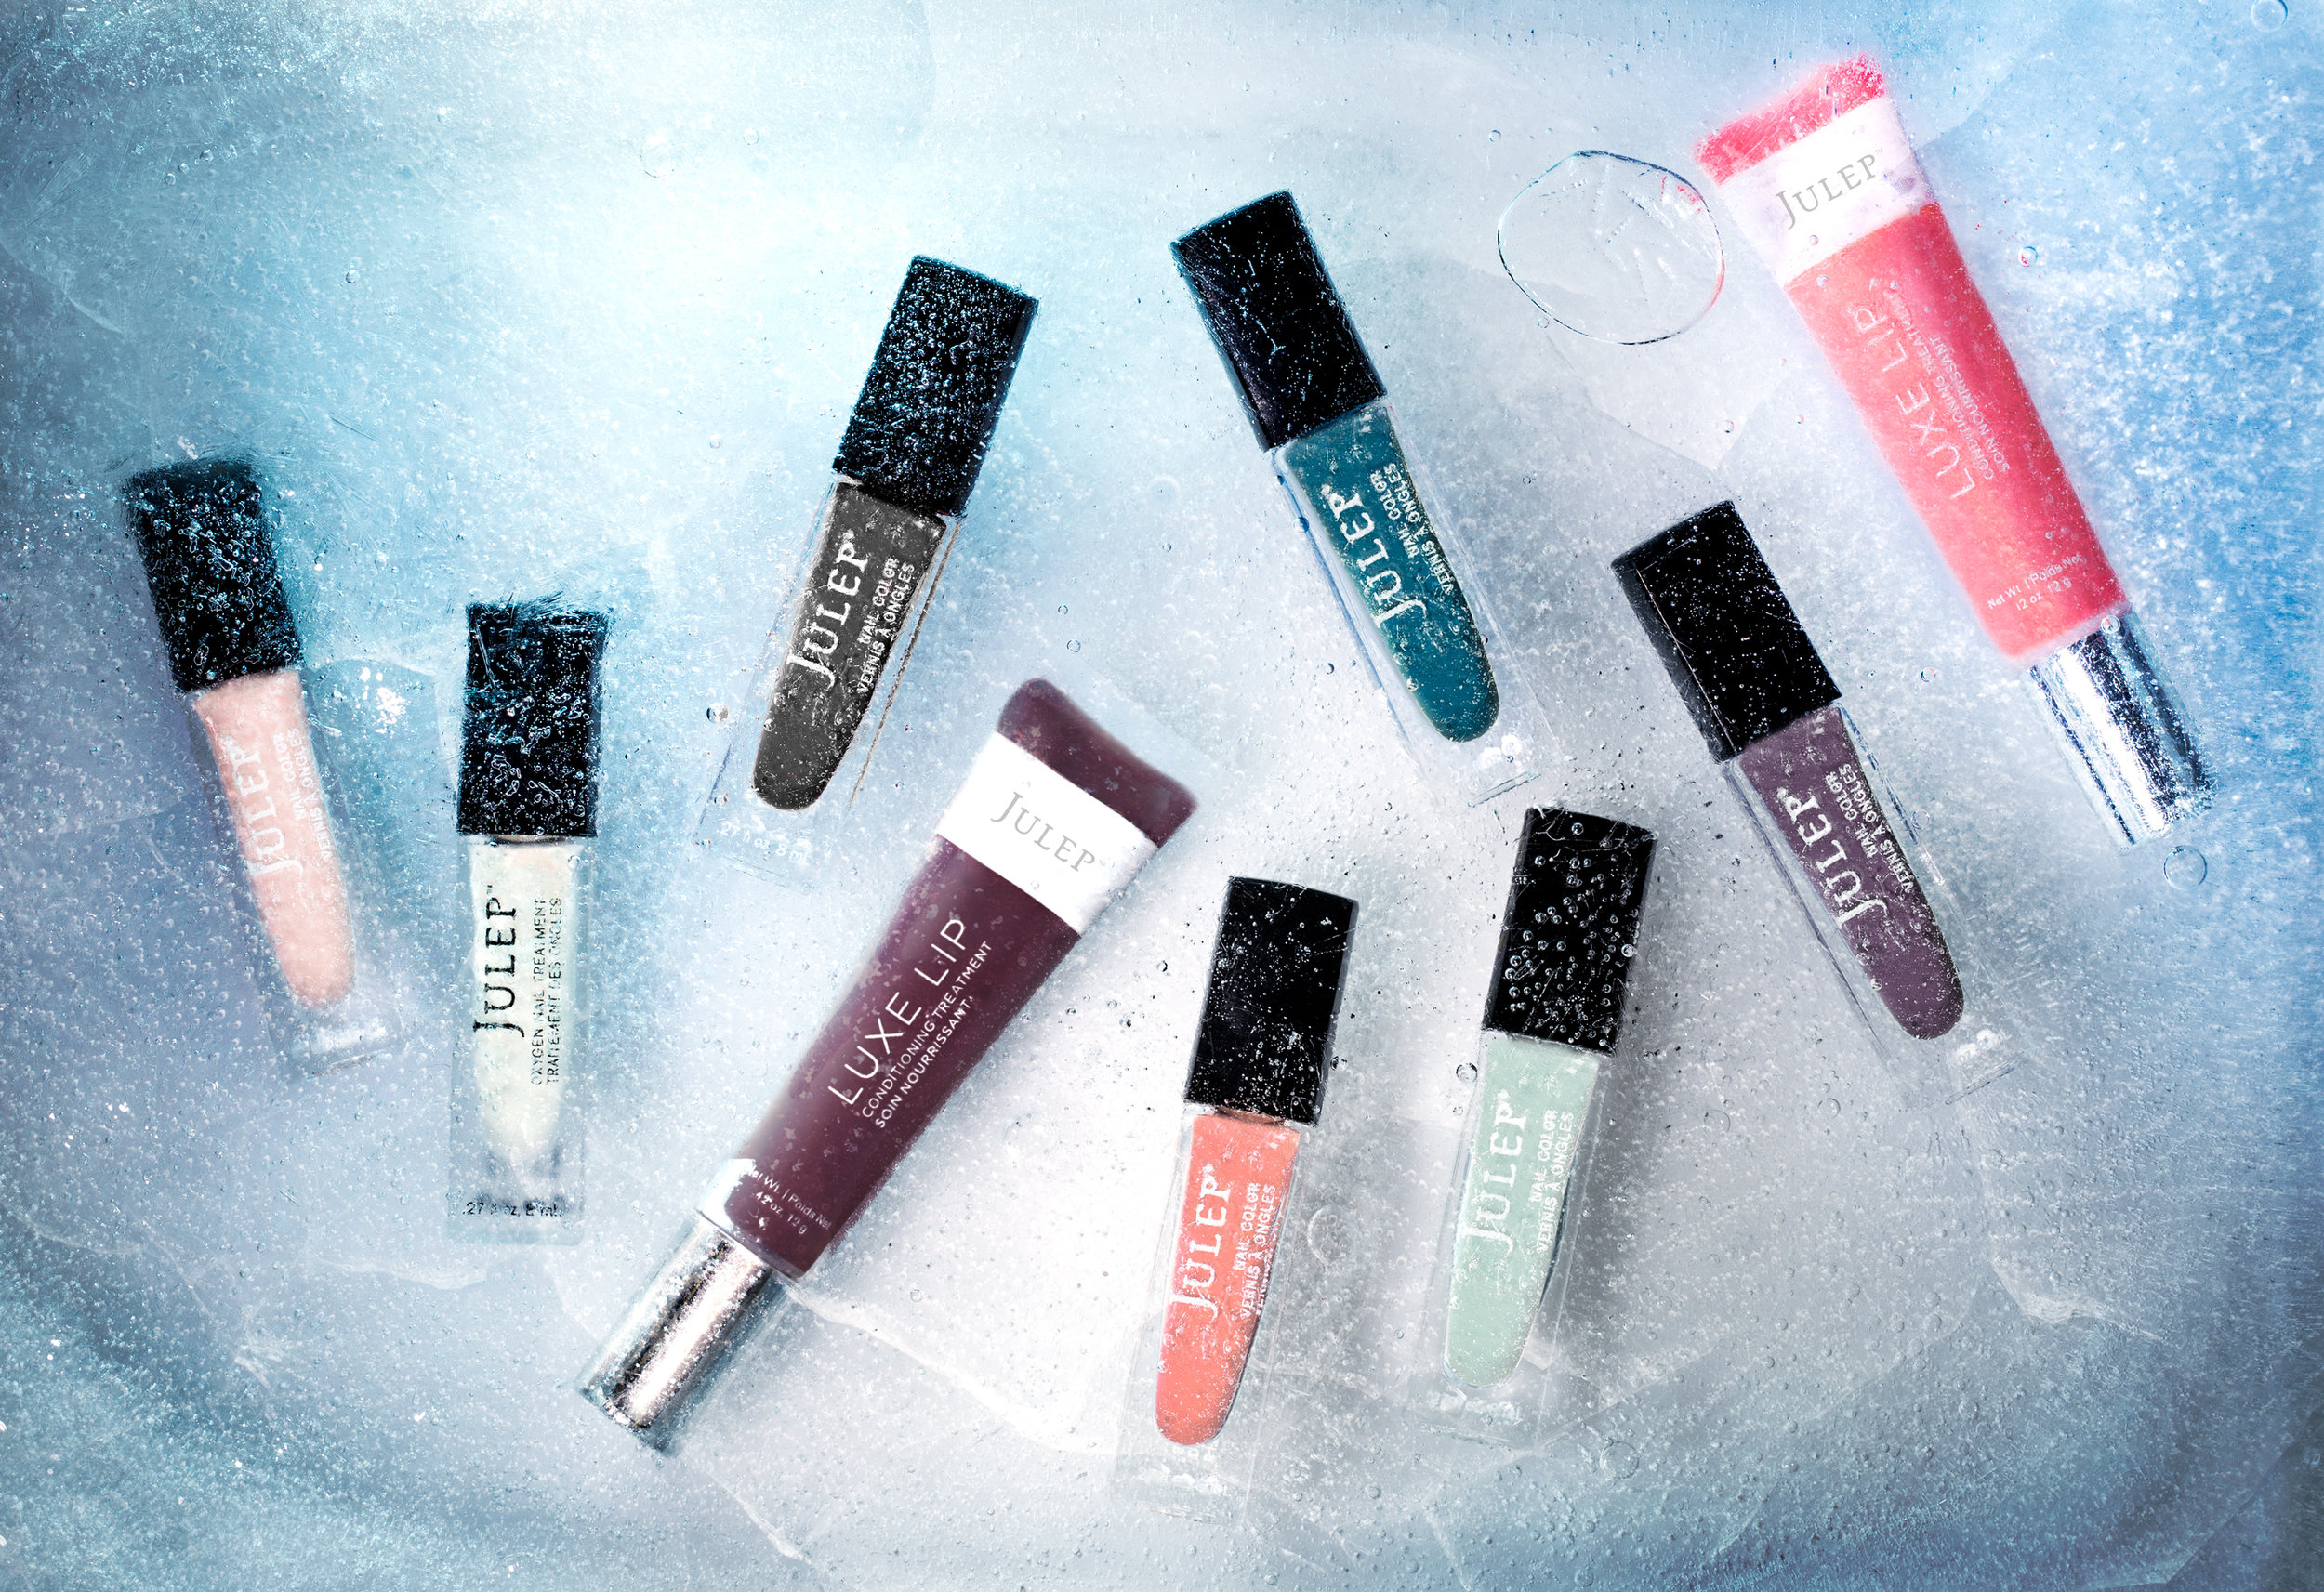 julep-ice-collection.jpg